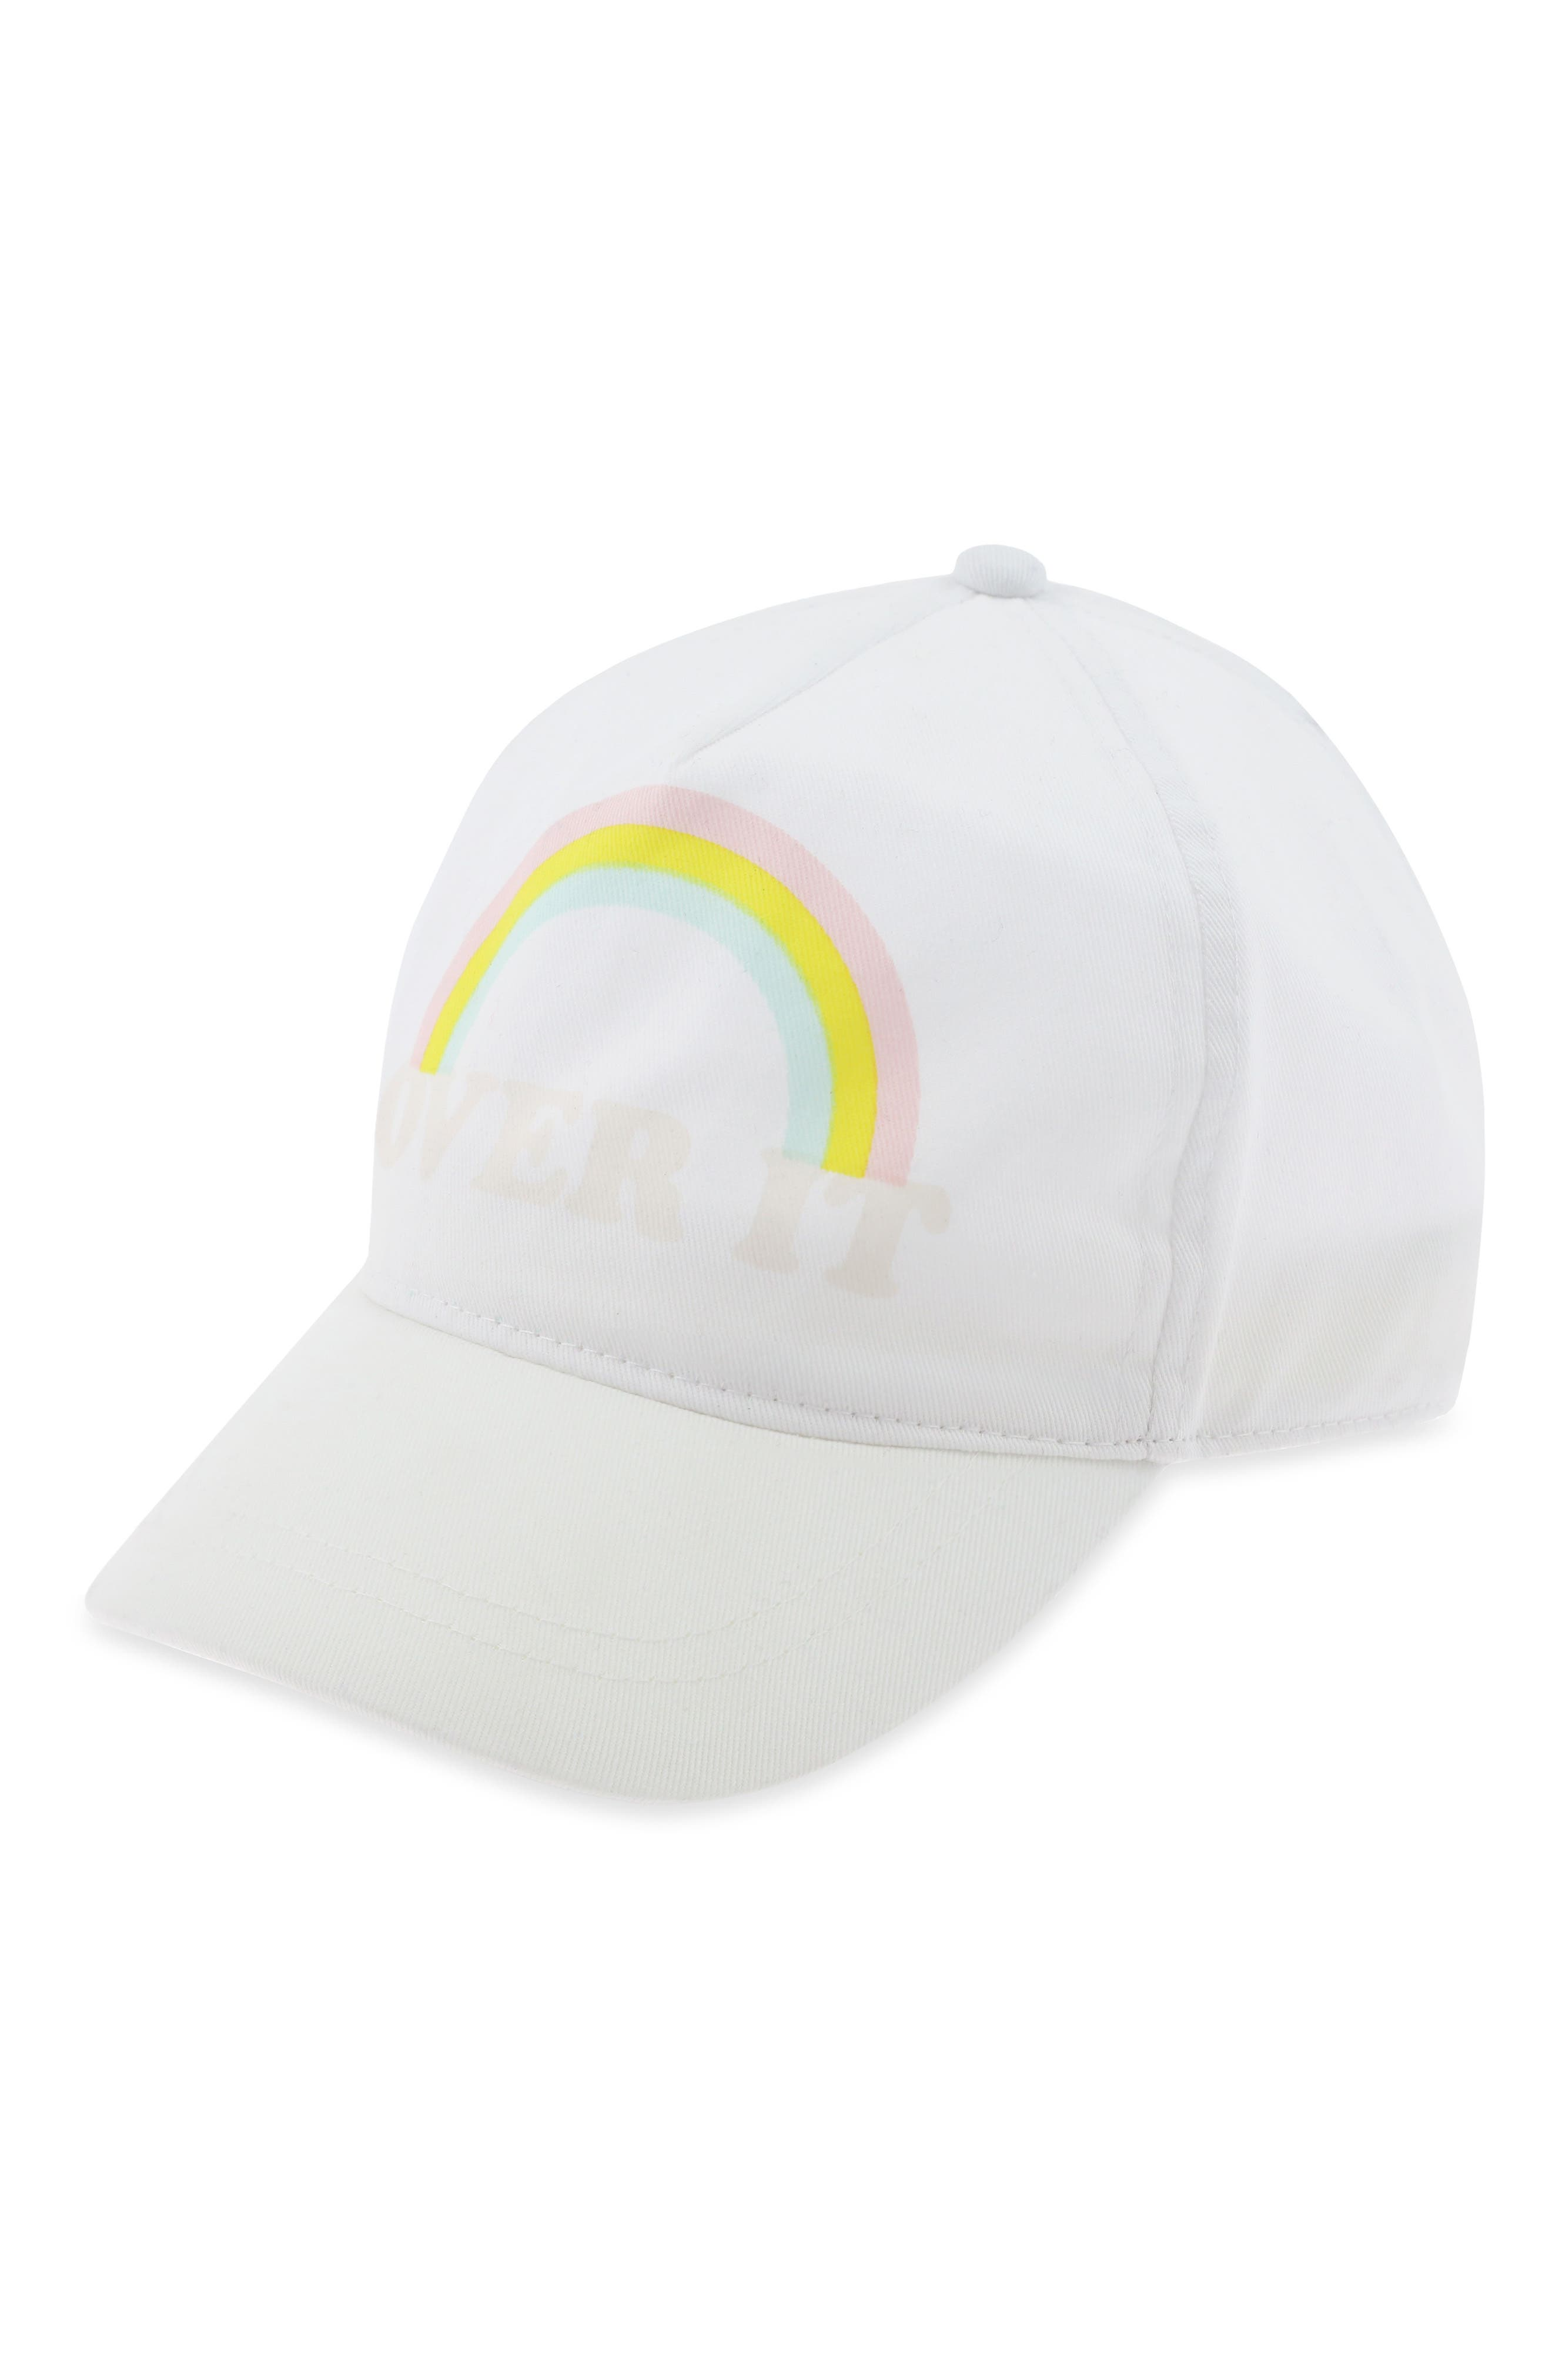 Capelli New York Over It Sun Activated Baseball Cap